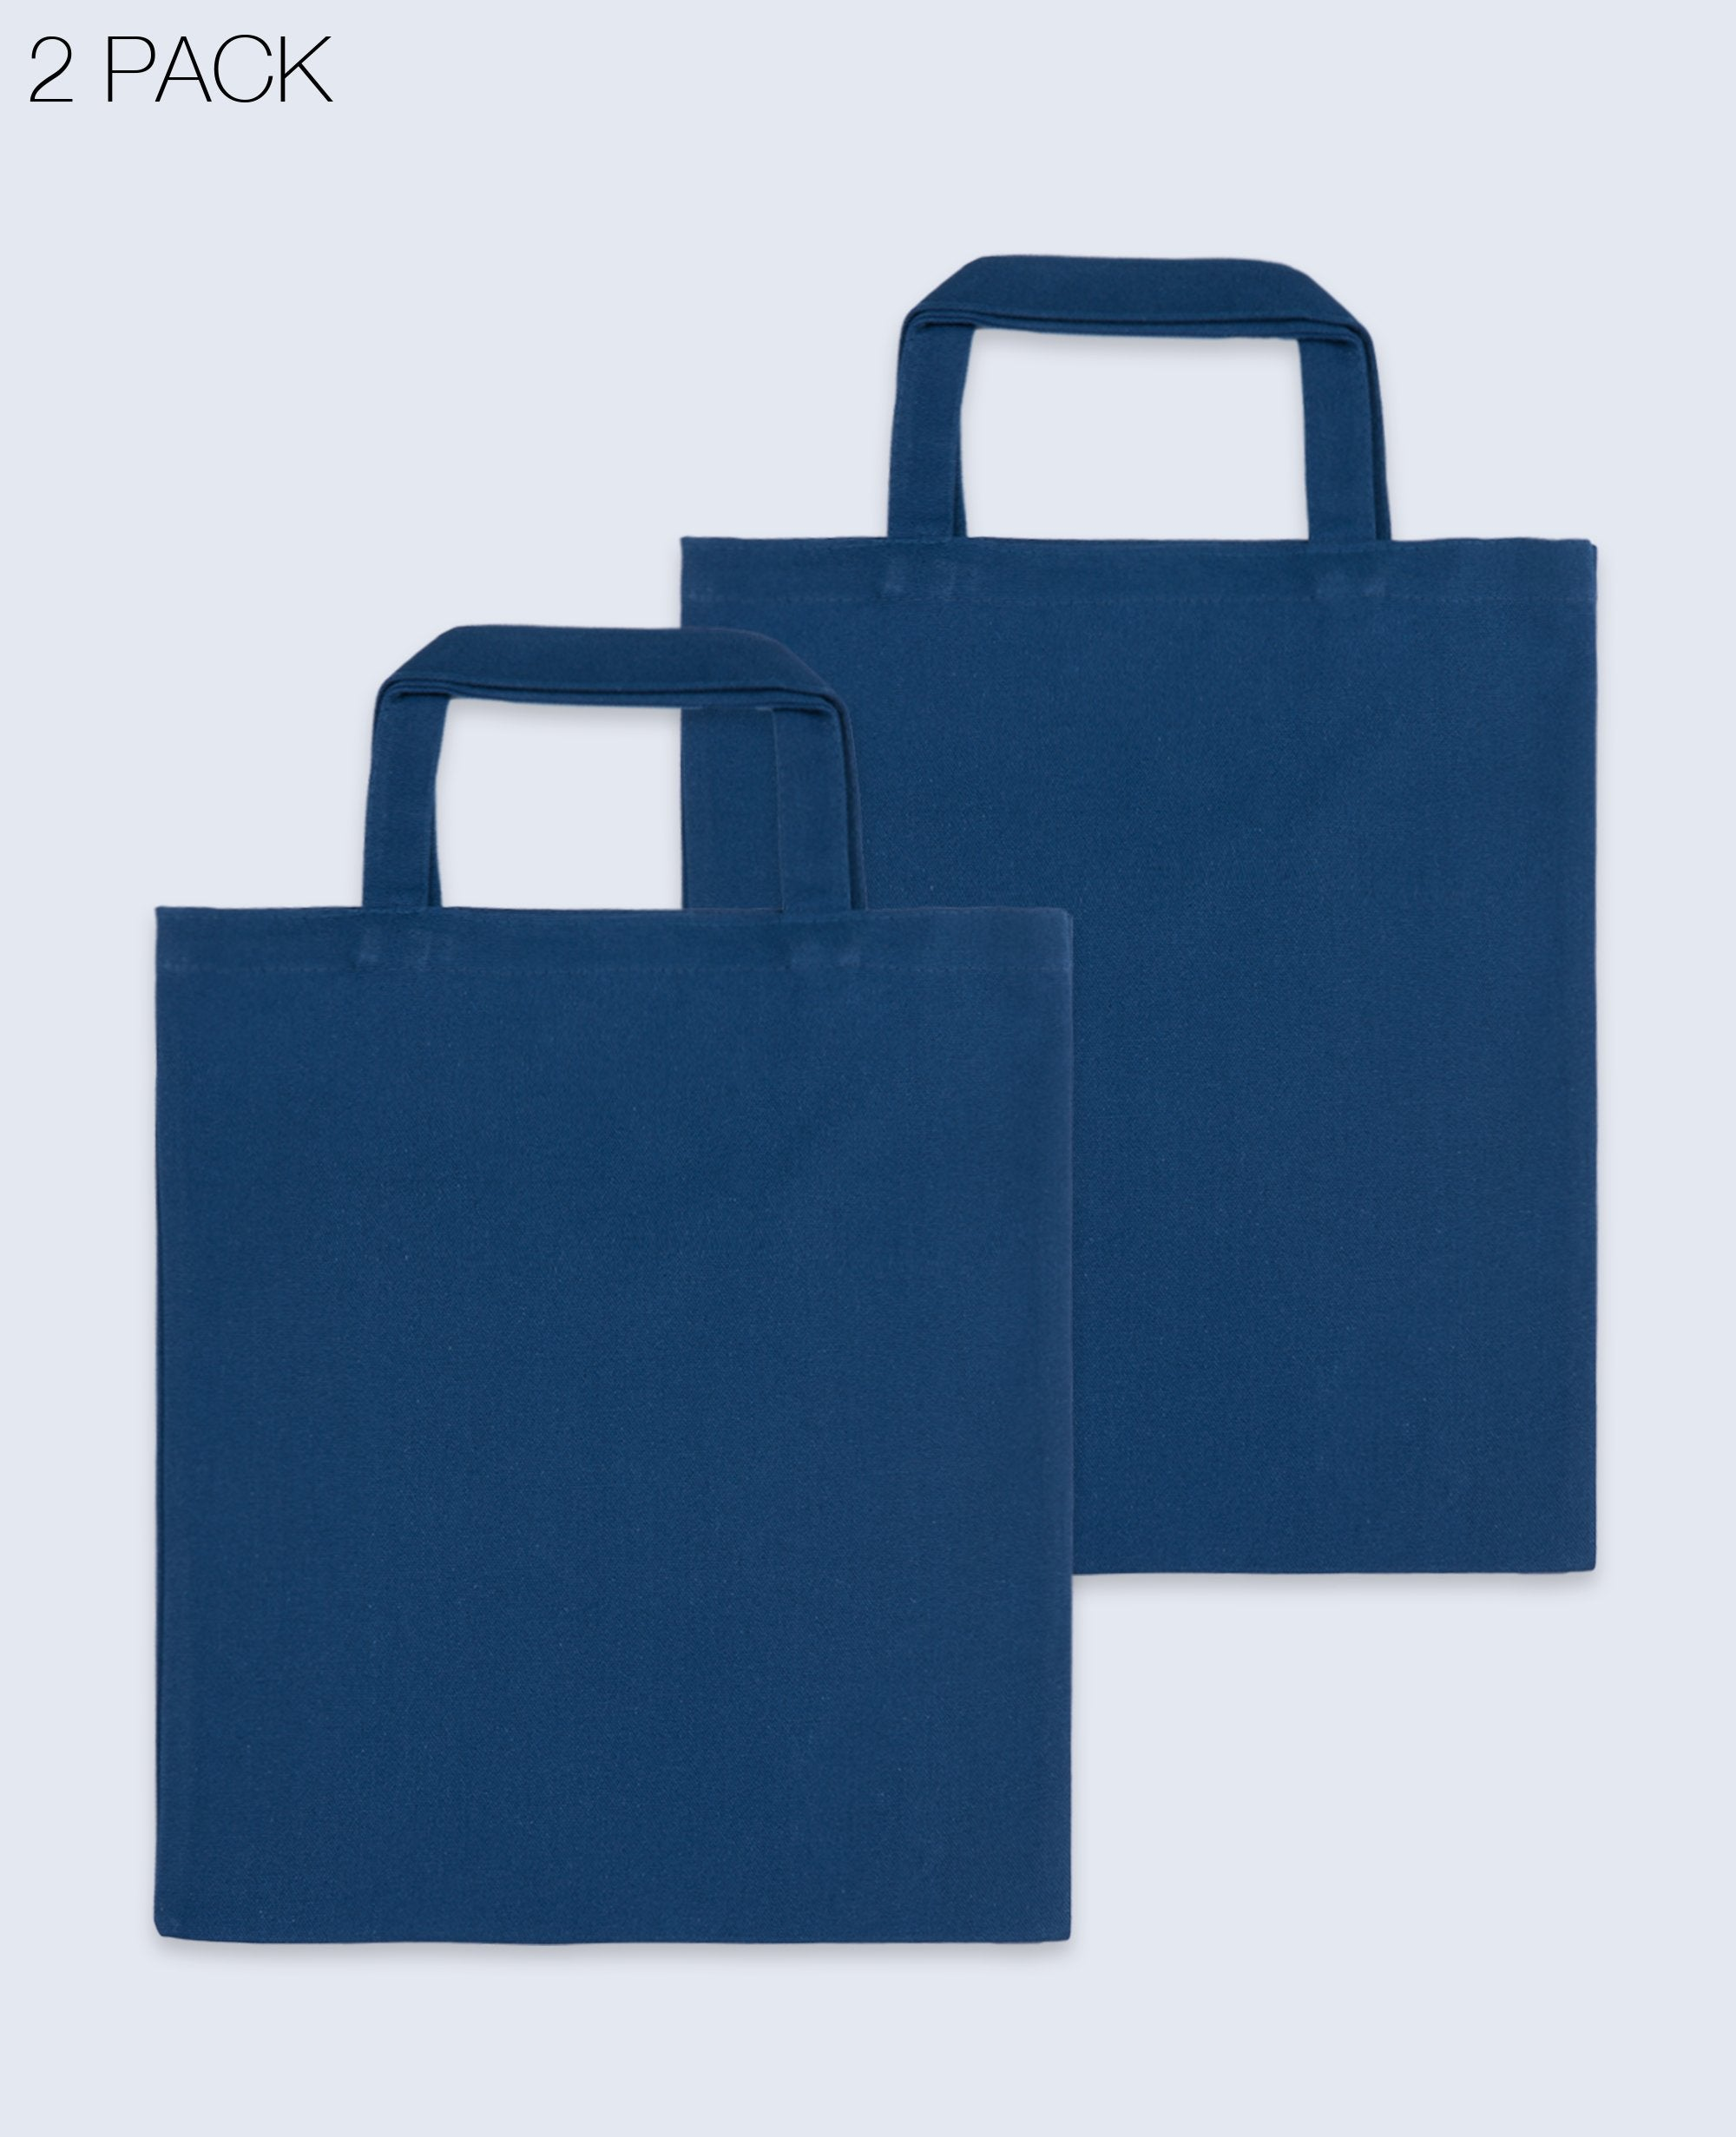 Short Handle Tote bag in Navy 2 pack - Tote bags - BRANMA - BRANMA